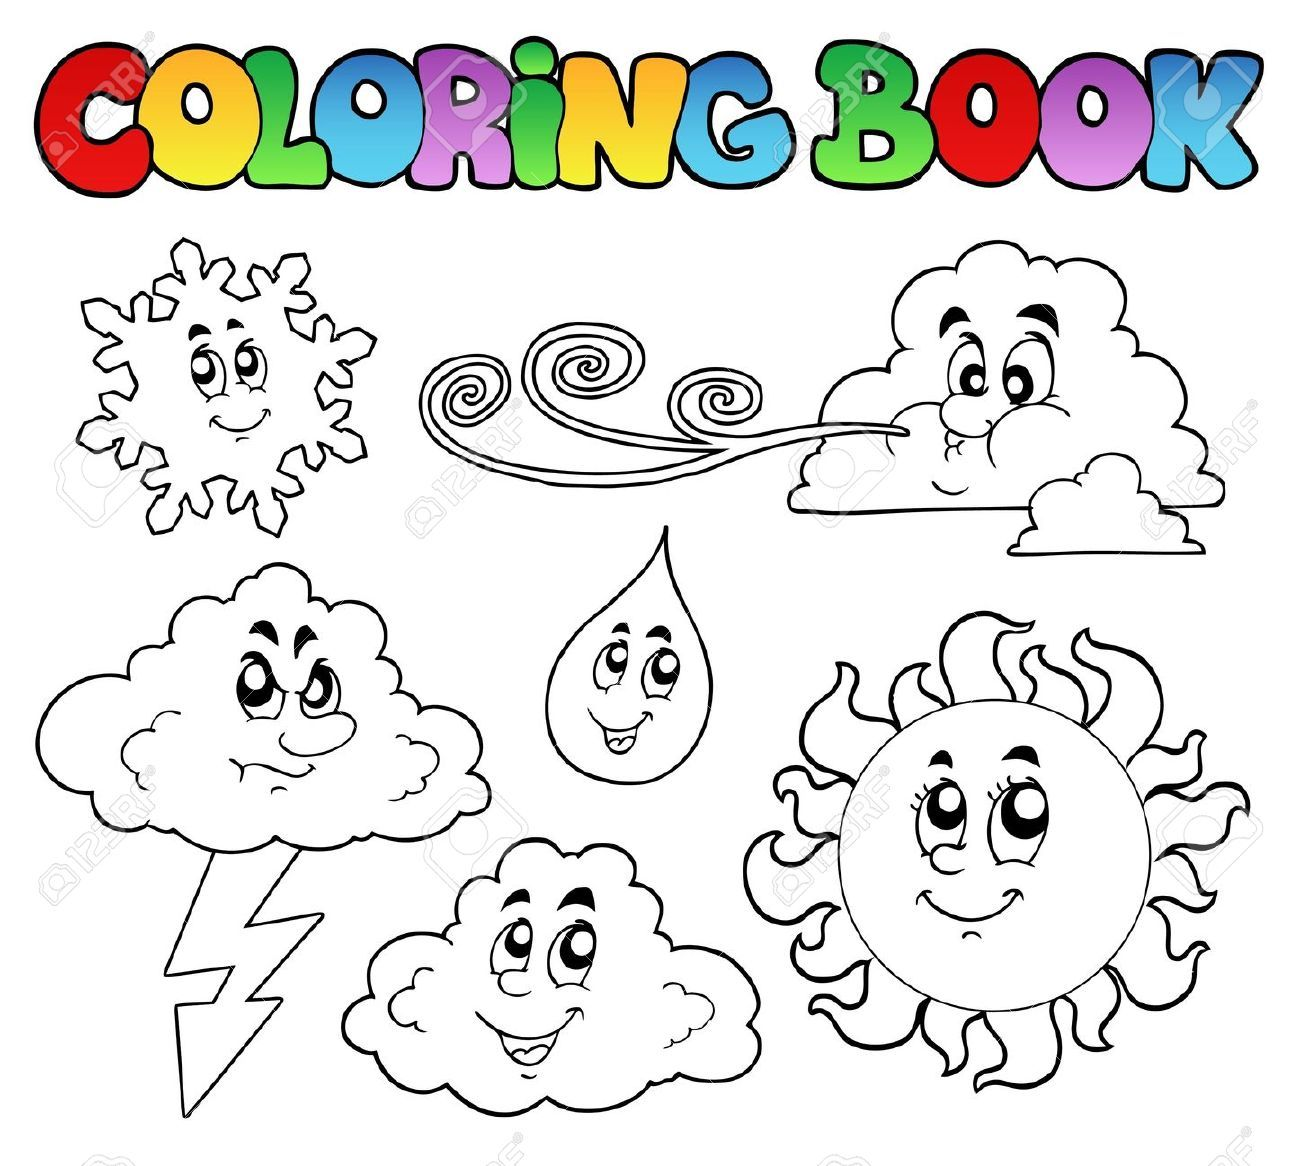 fire weather coloring book - Google Search | Johns retirement ...